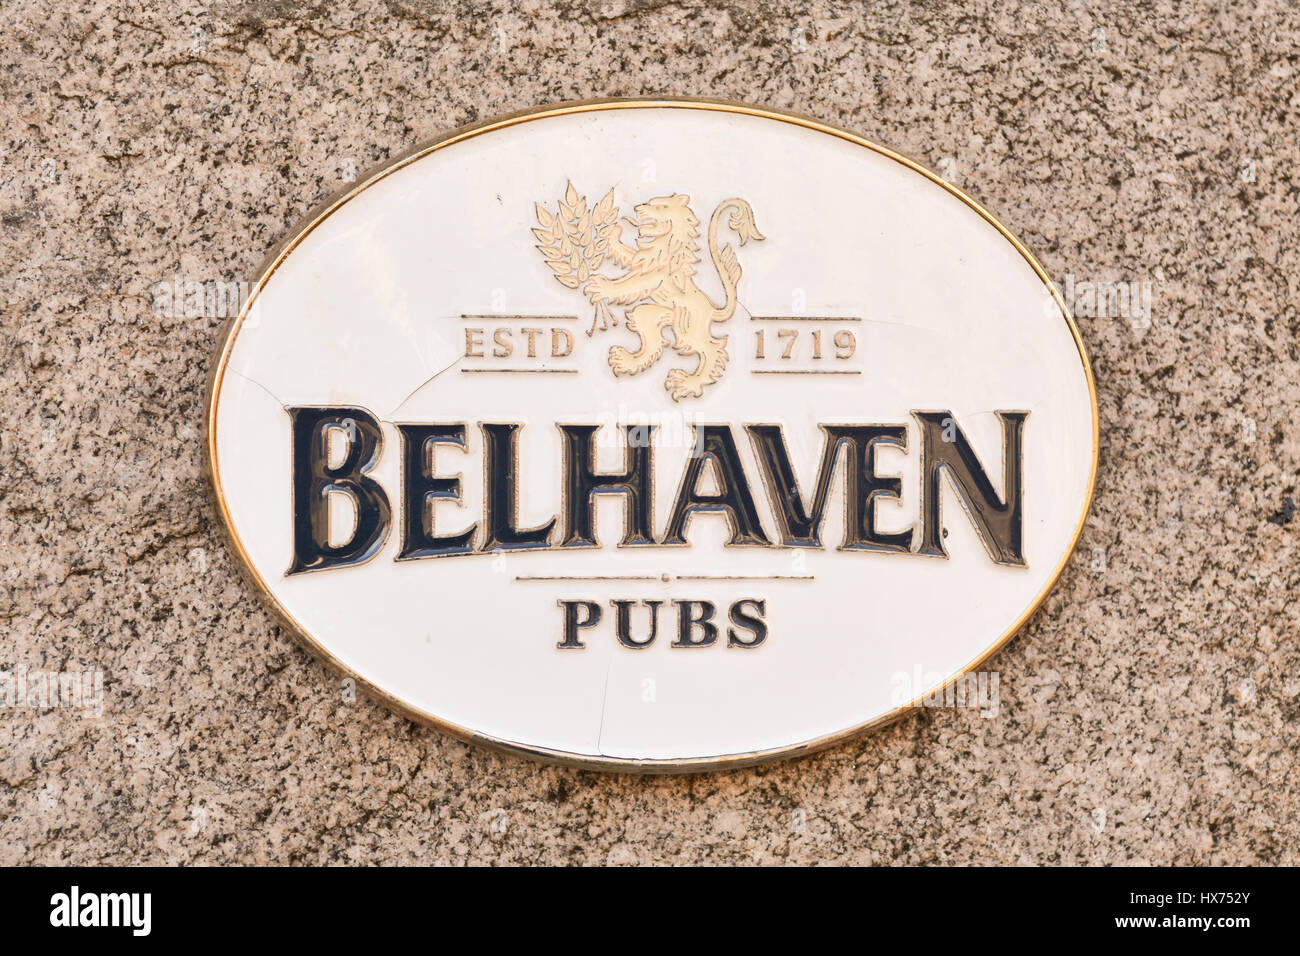 Bellhaven Pub Pubs sign - Stock Image